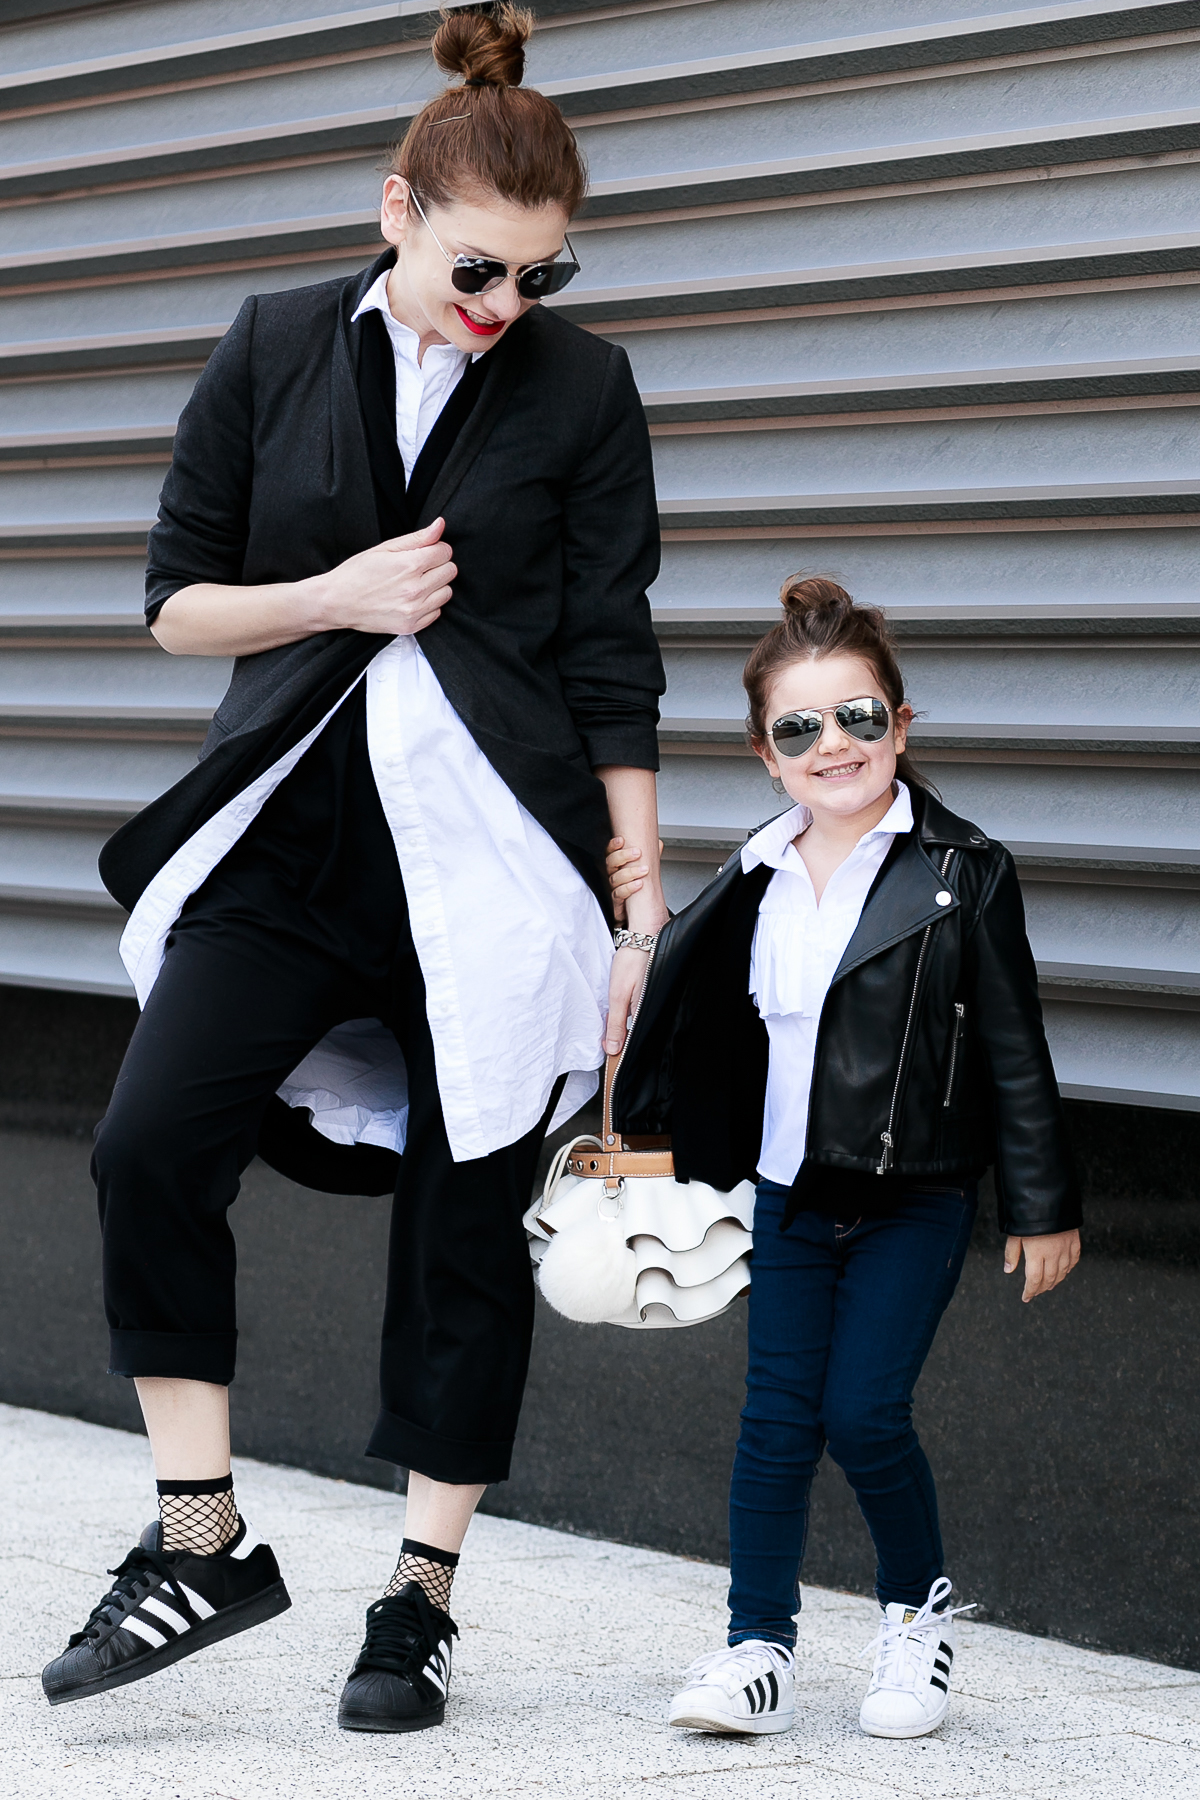 Mother - Daughter Mommy and Me Outfit Mini Me Street Style in Monochrome | EdgyCuts